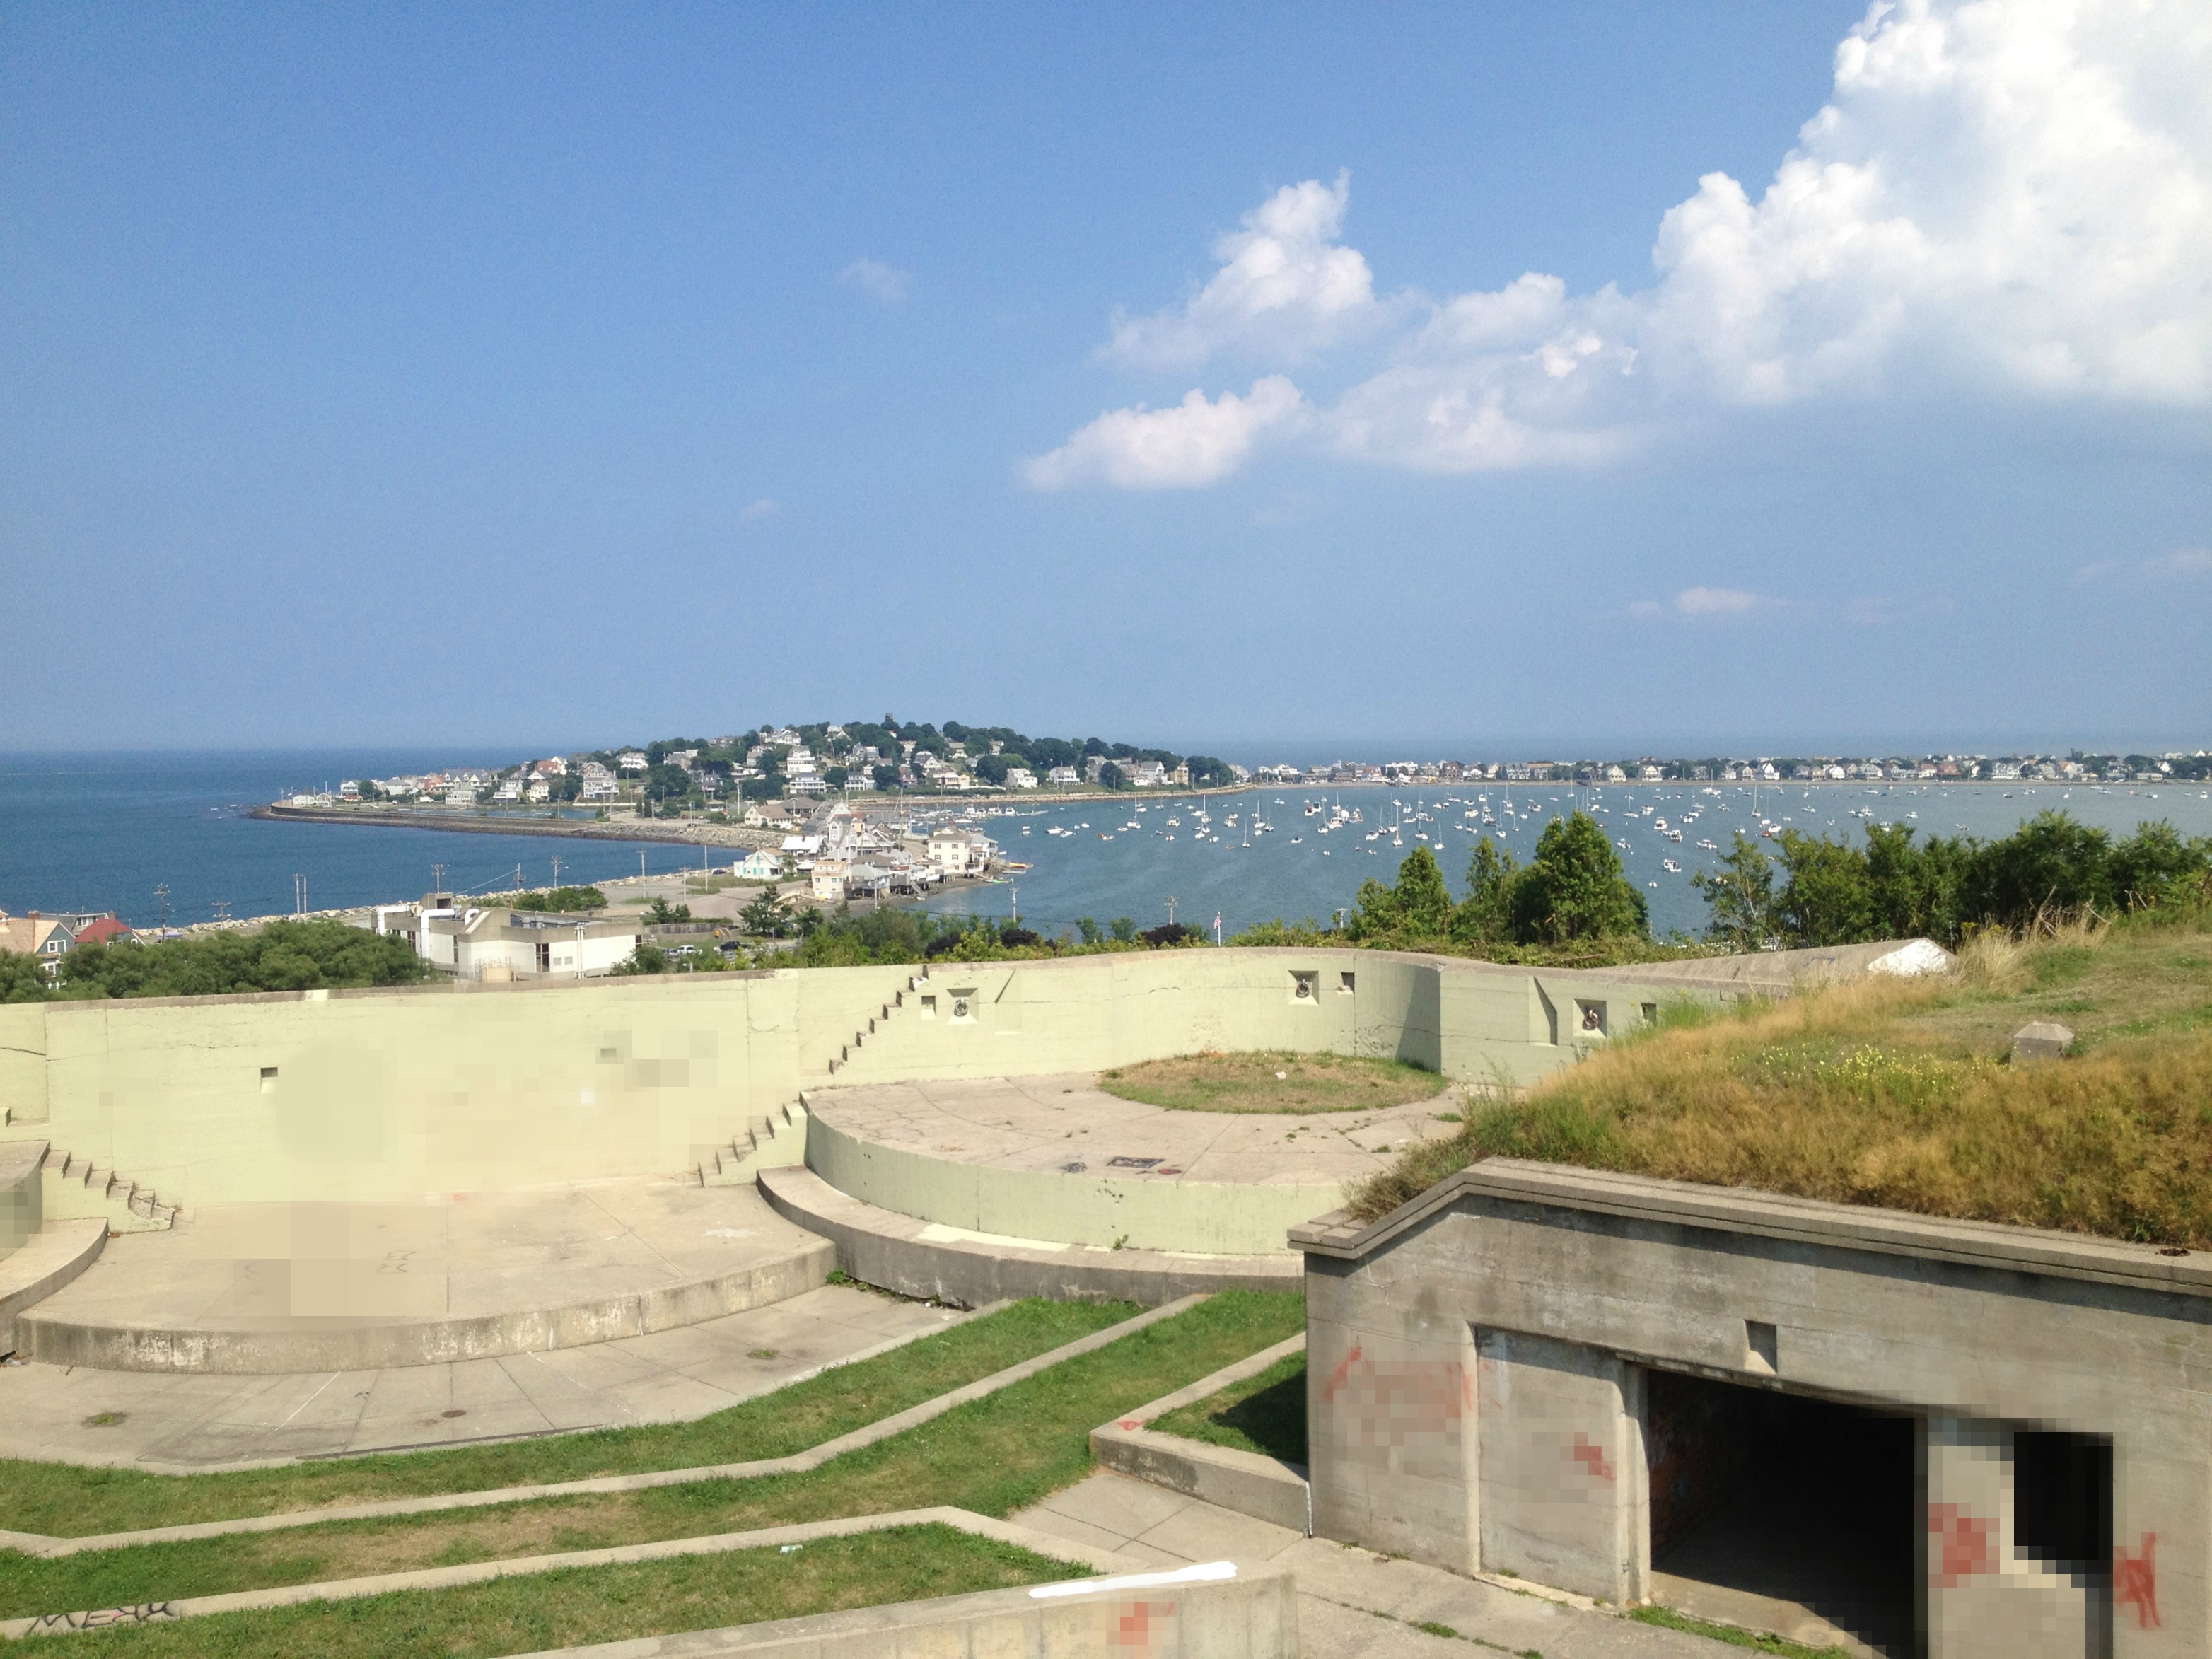 Views from fort revere in hull boston harbor beaconboston harbor fort revere is a less well known landmark which is what i found compelling about going there the fort has a strategic location on a hill high above hulls nvjuhfo Choice Image